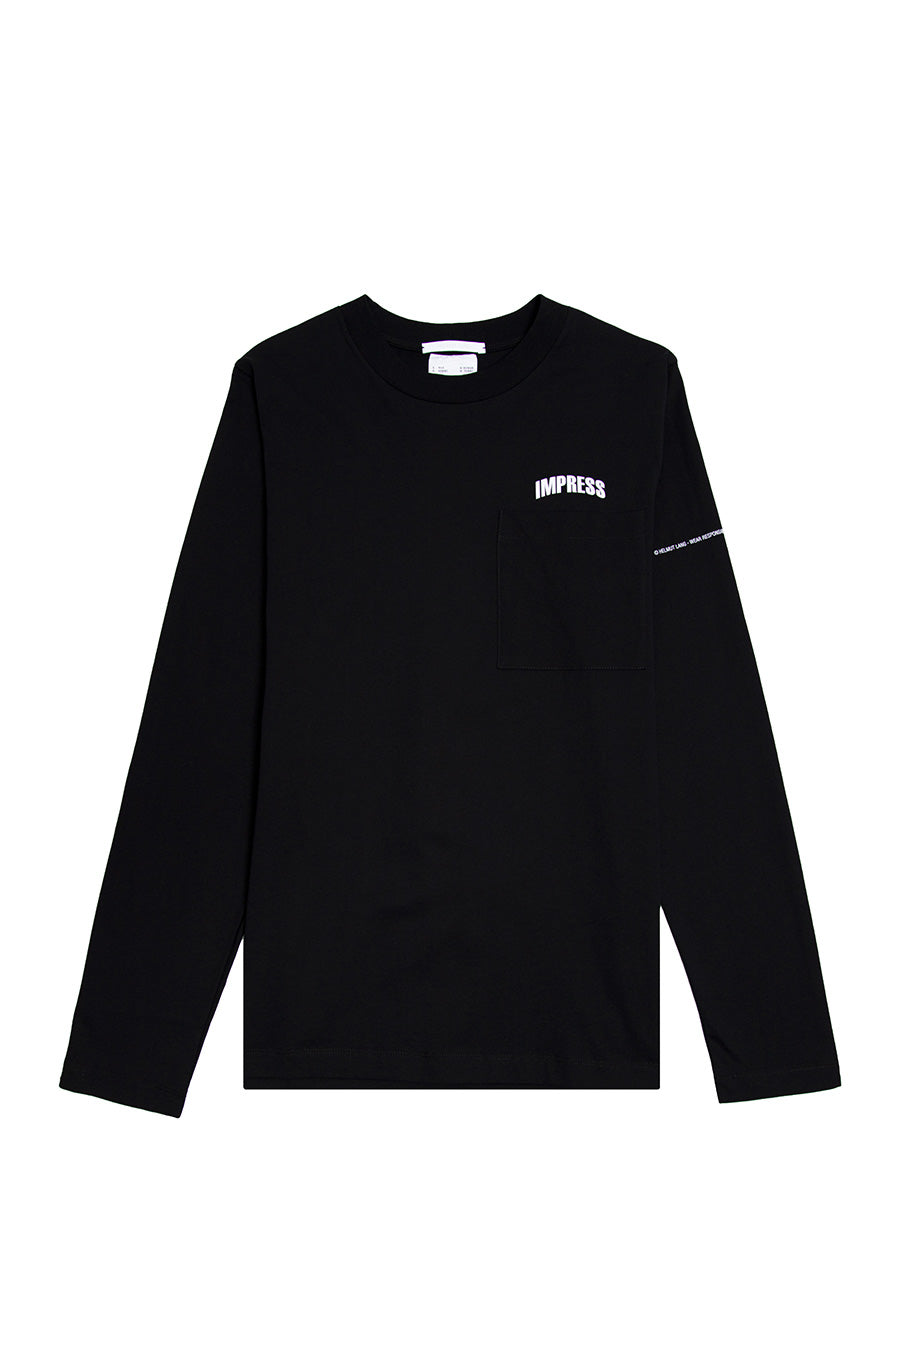 Helmut Lang - Black Impress Long Sleeve T-Shirt | 1032 SPACE